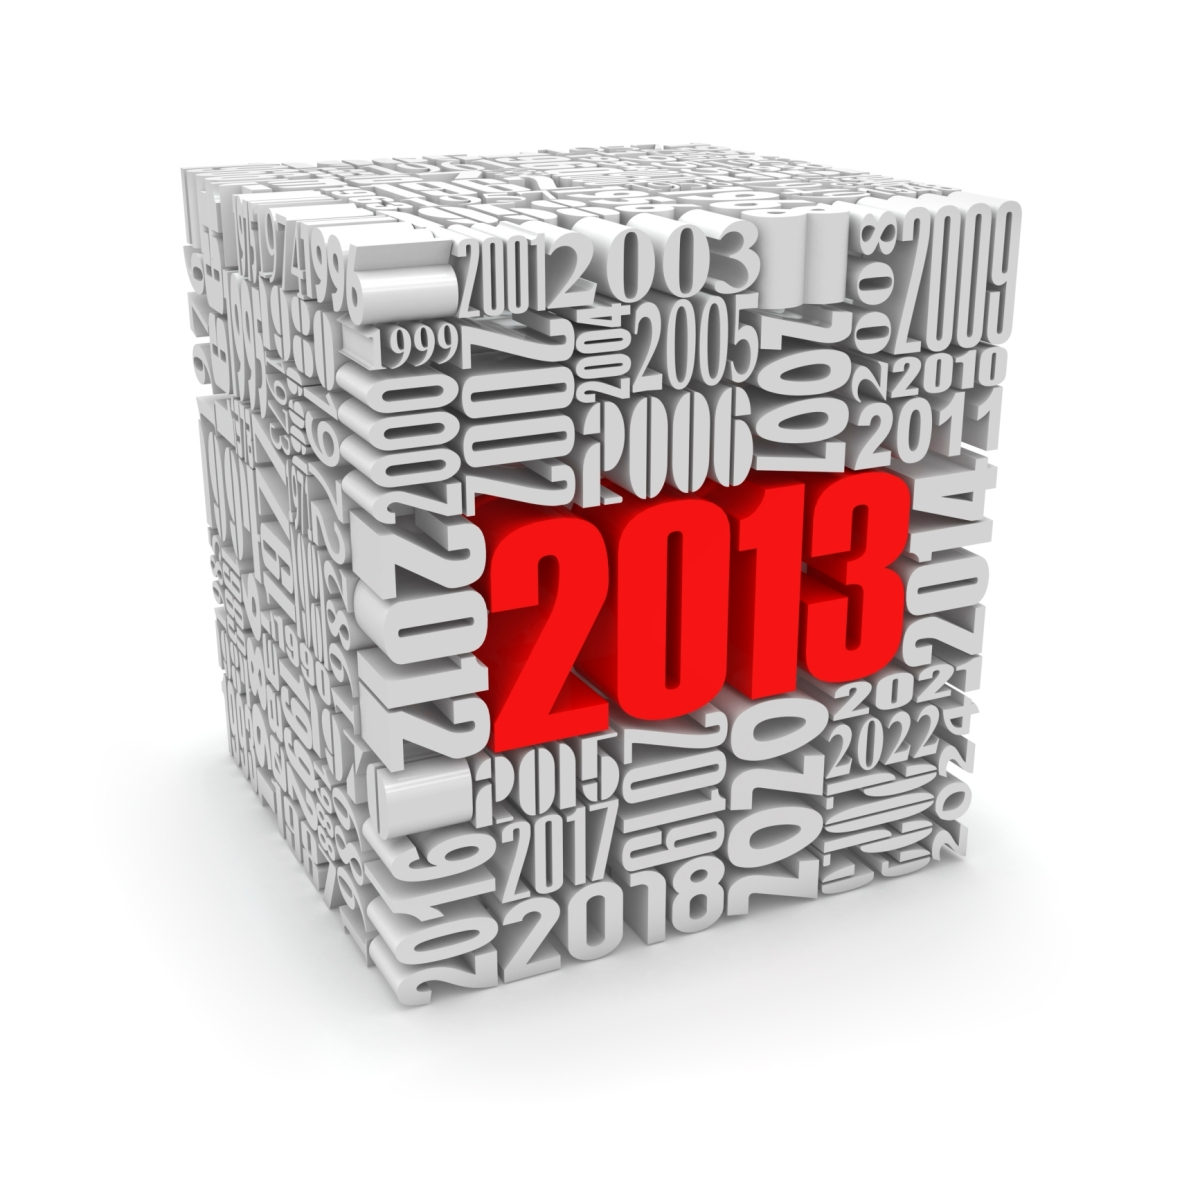 Happy New Year 2013! Above Promotions Company, Tampa, FL 2013.